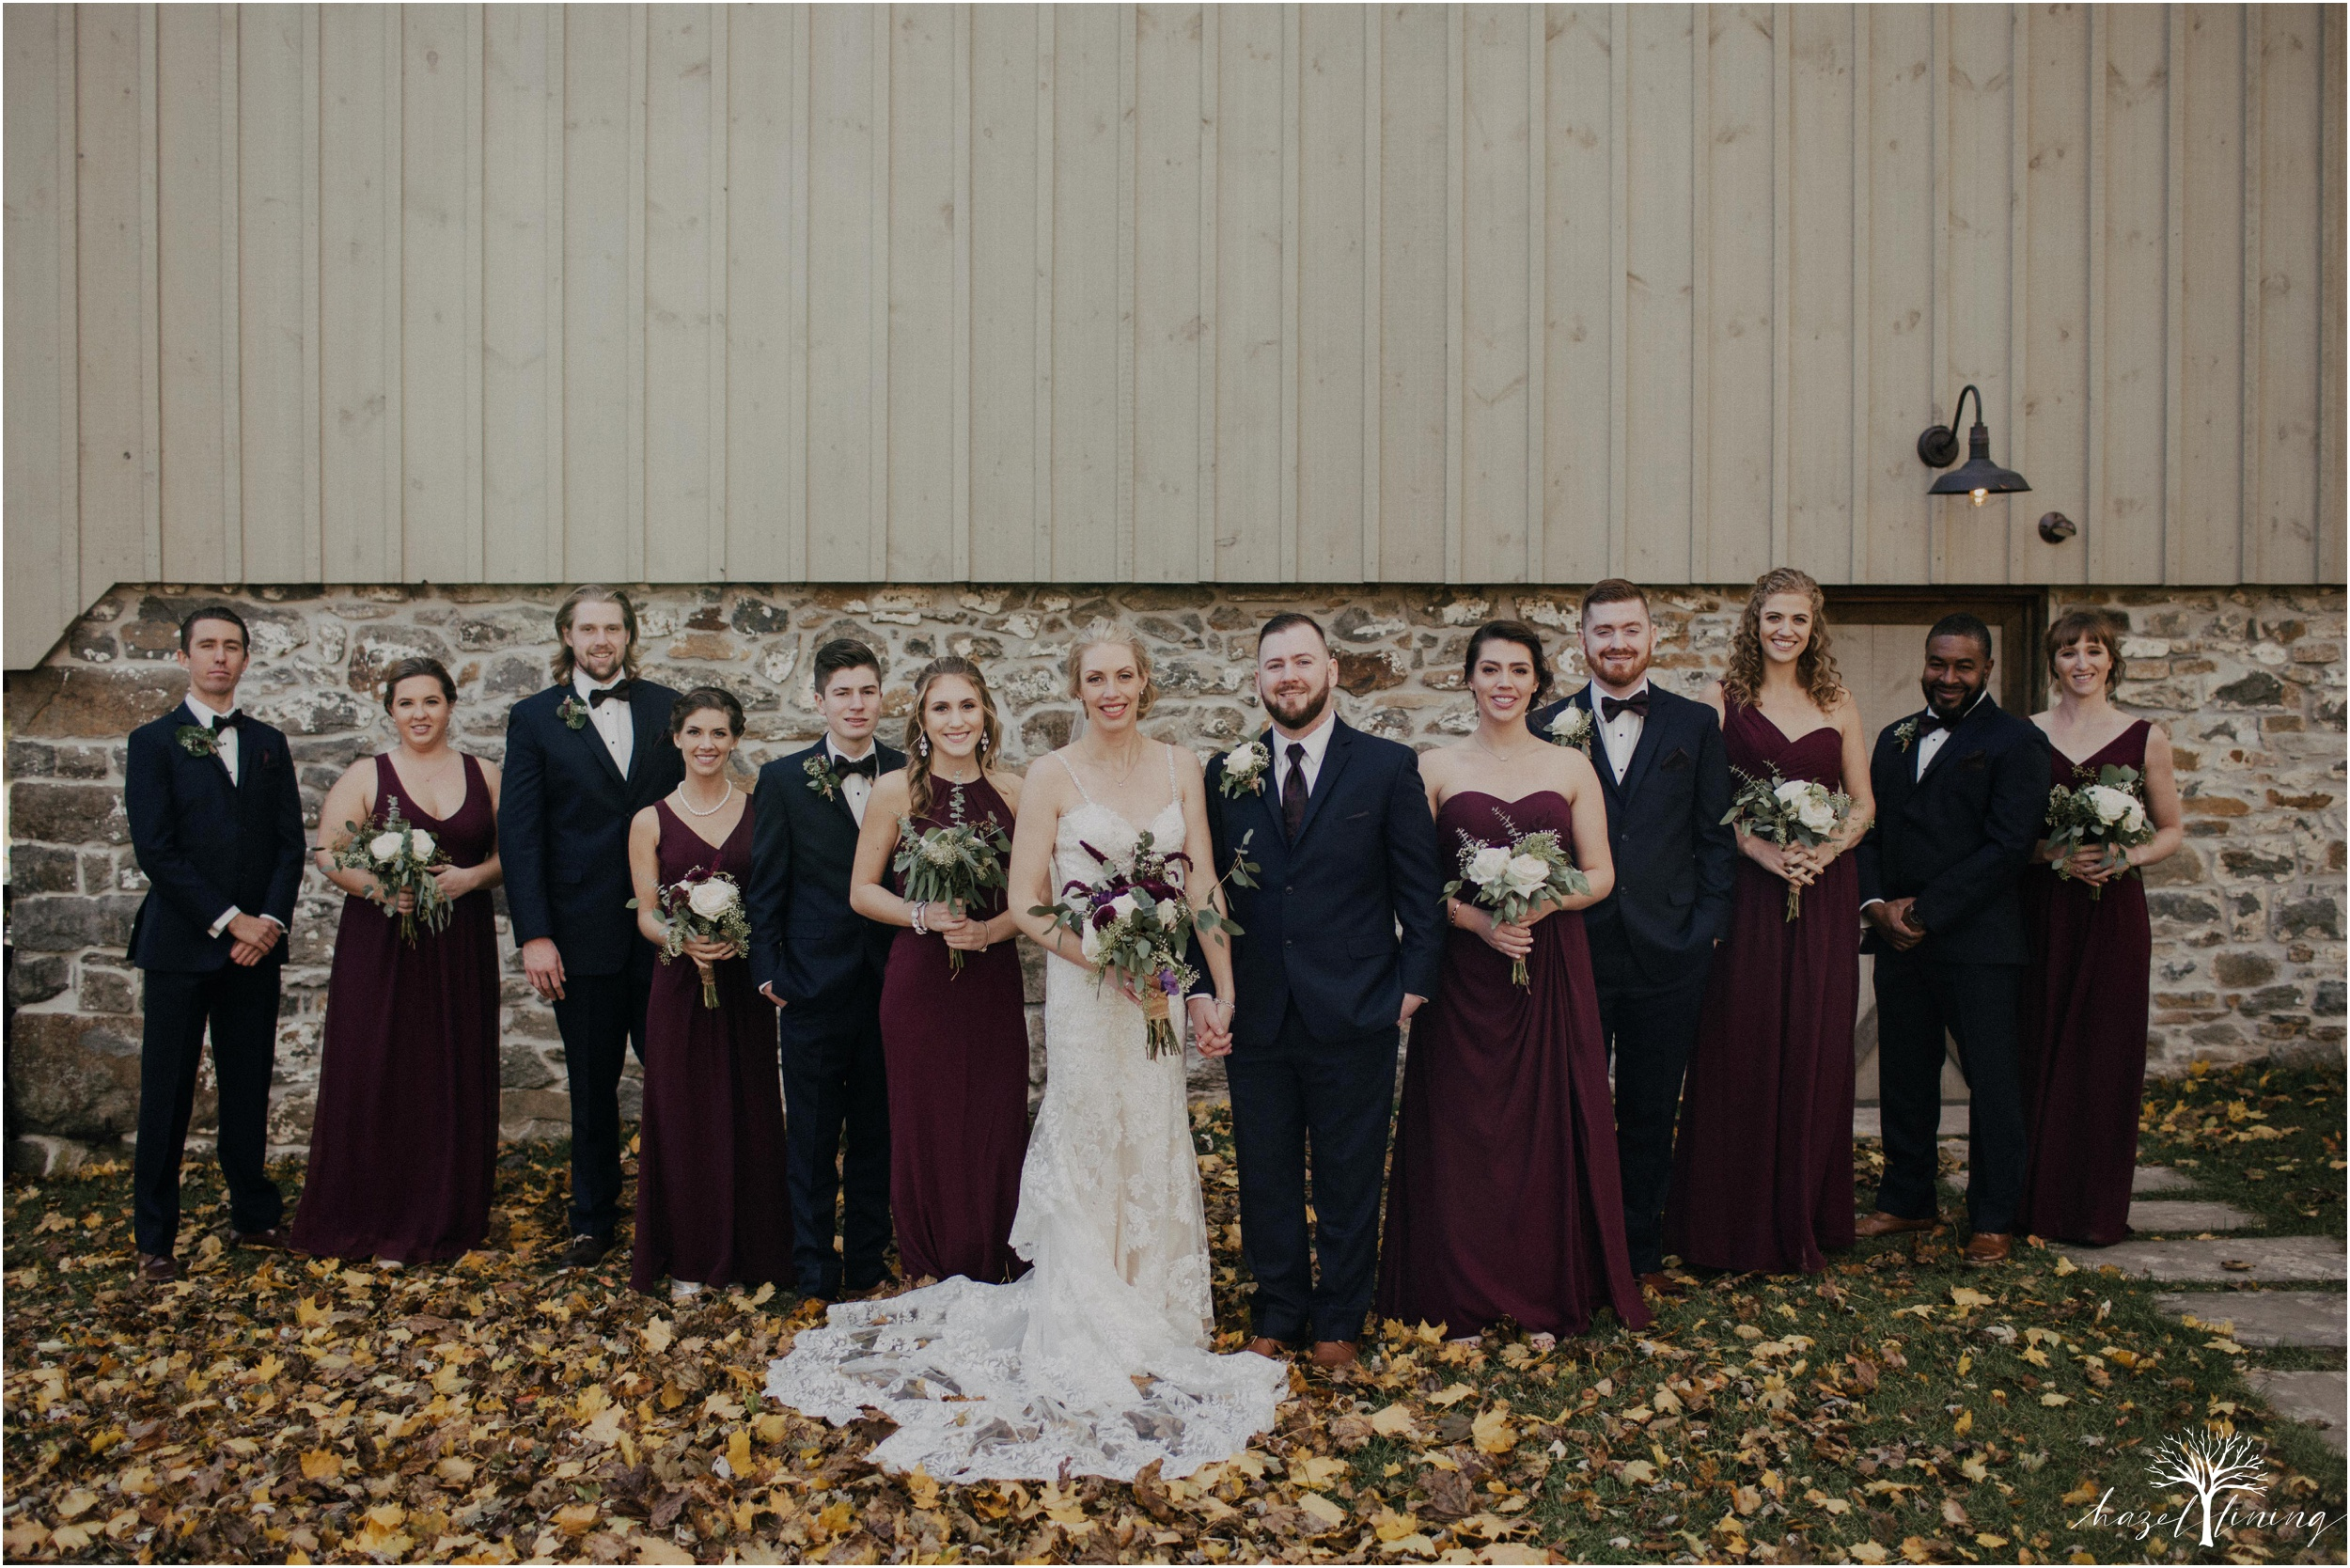 briana-krans-greg-johnston-farm-bakery-and-events-fall-wedding_0067.jpg